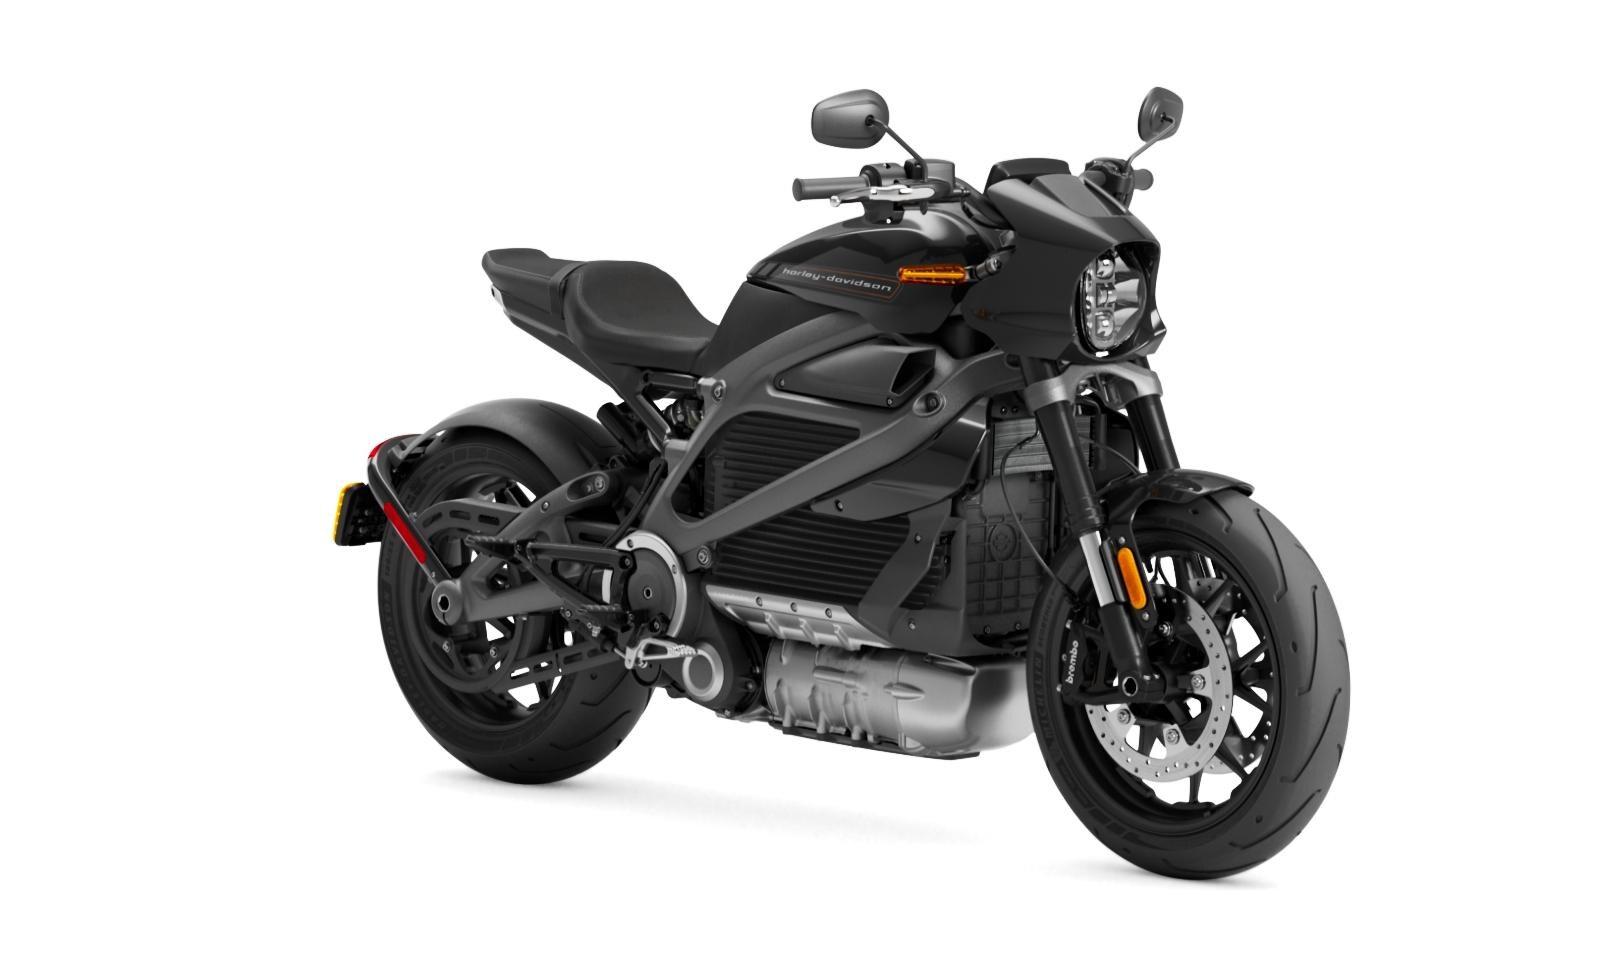 2020 LiveWire Electric Motorcycle | Harley-Davidson USA